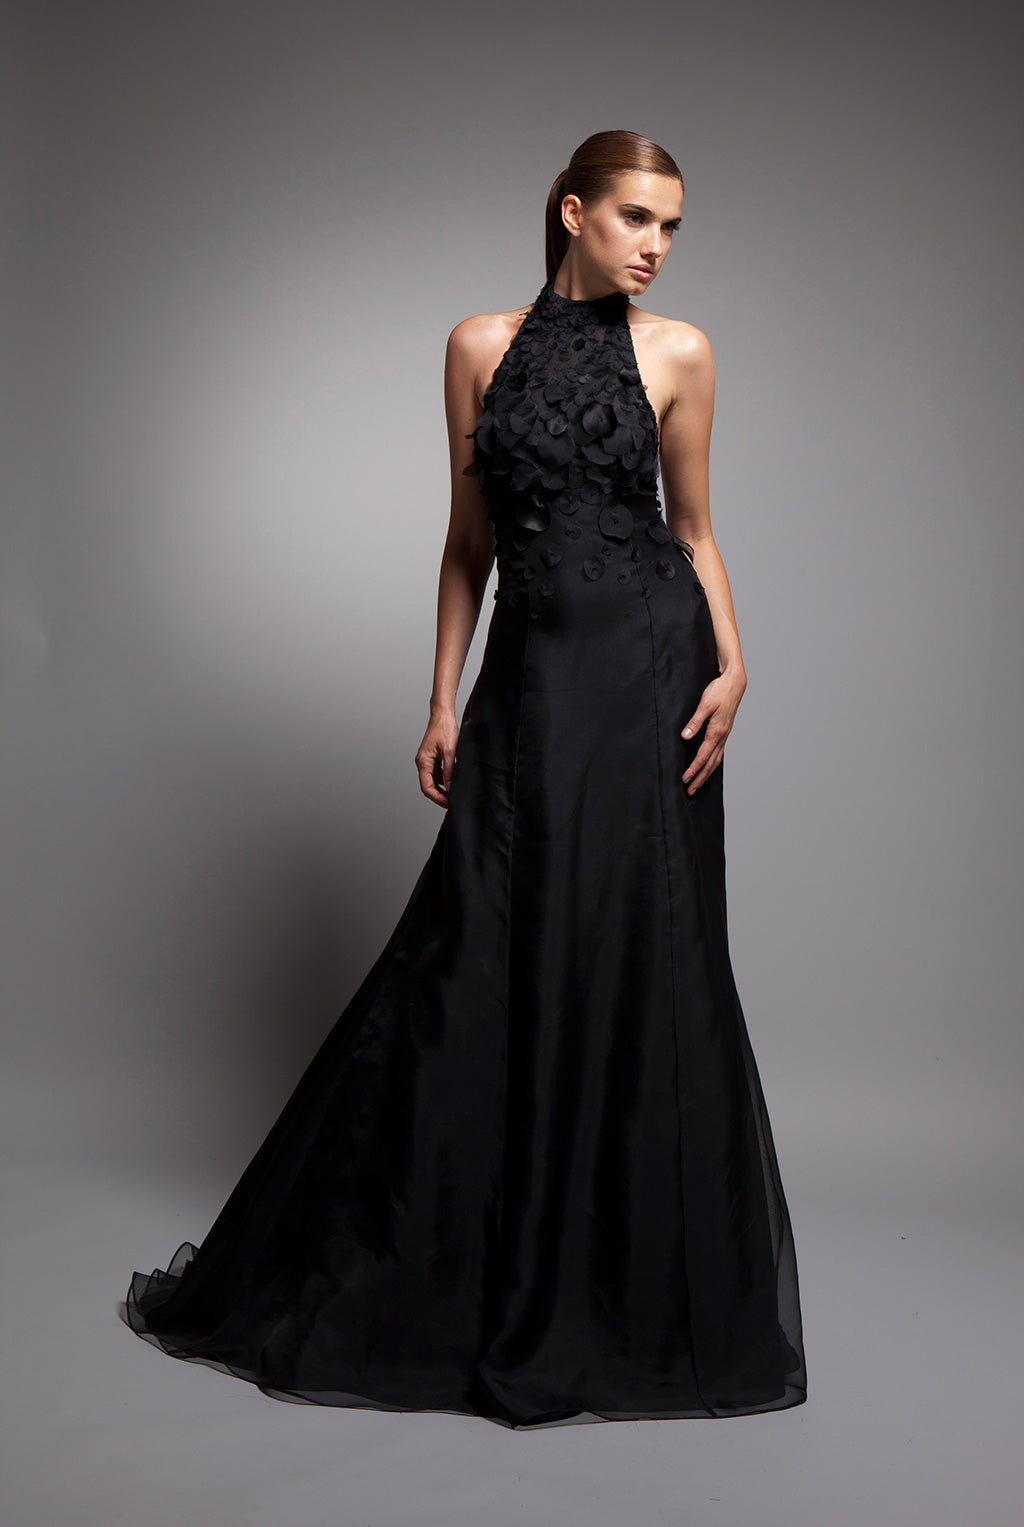 Sylvie - Black silk crepe gown